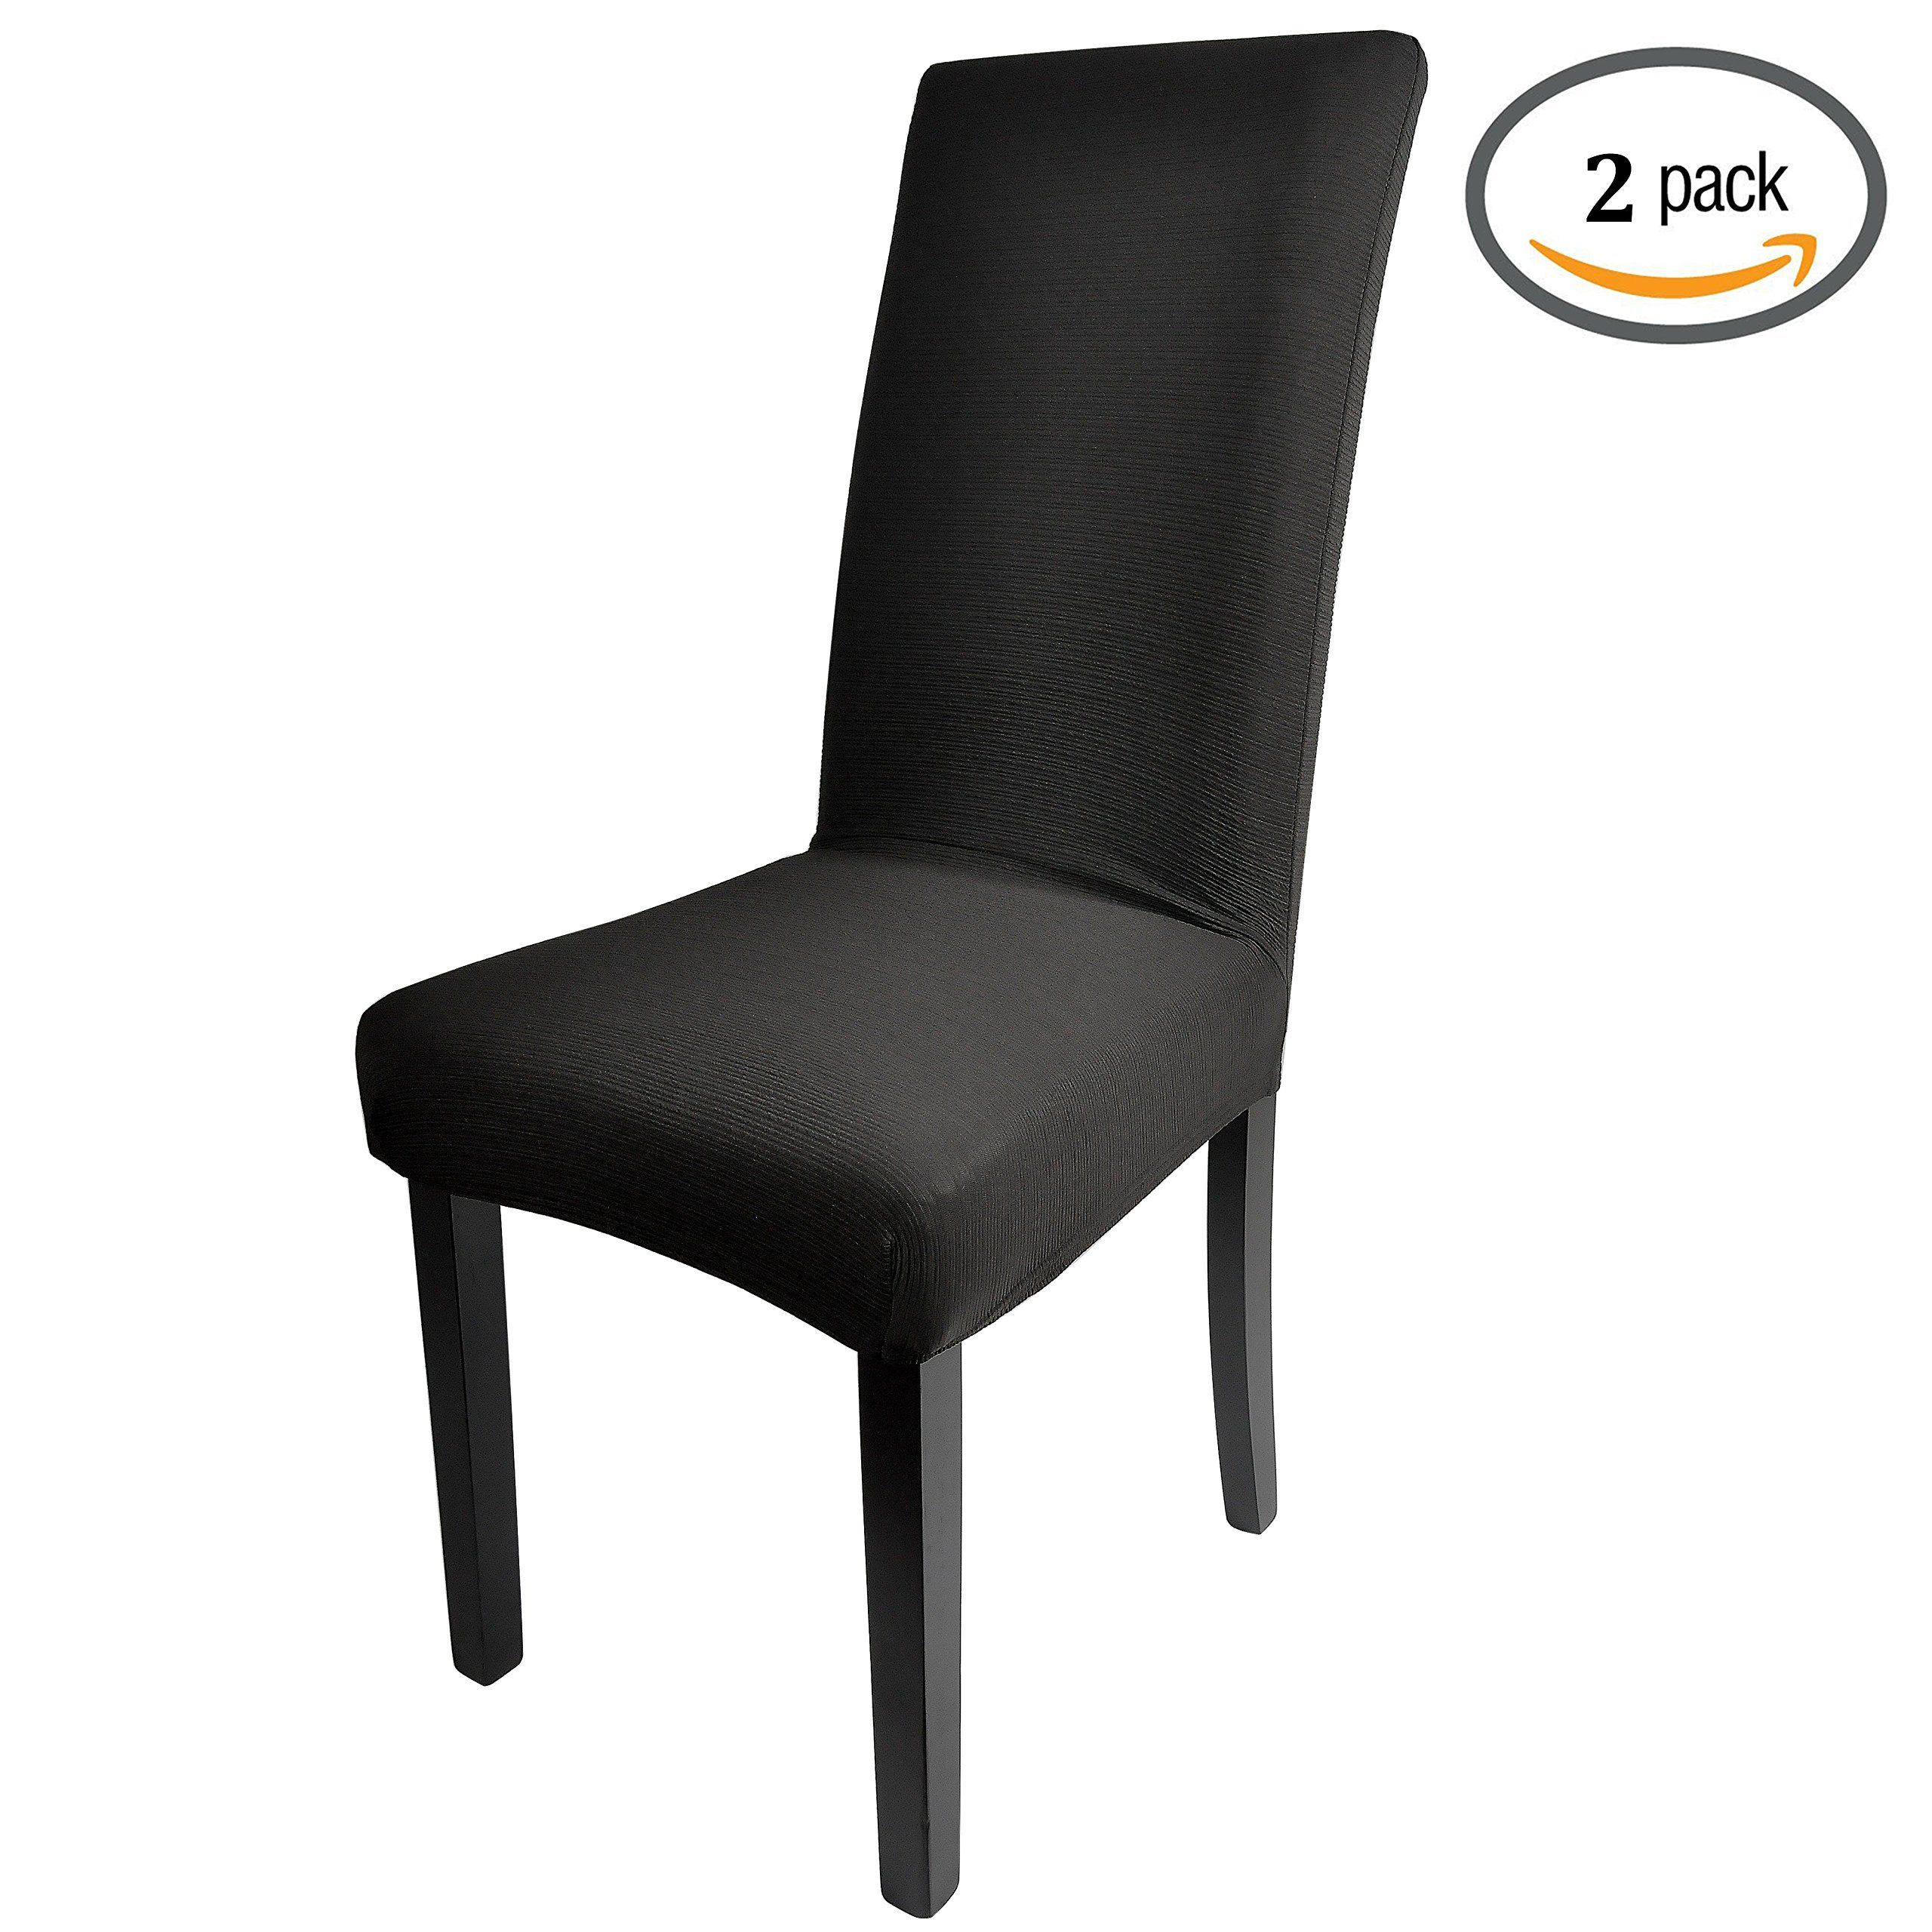 Dining Room Chair Covers LIXFDT Jacquard Stretch Double